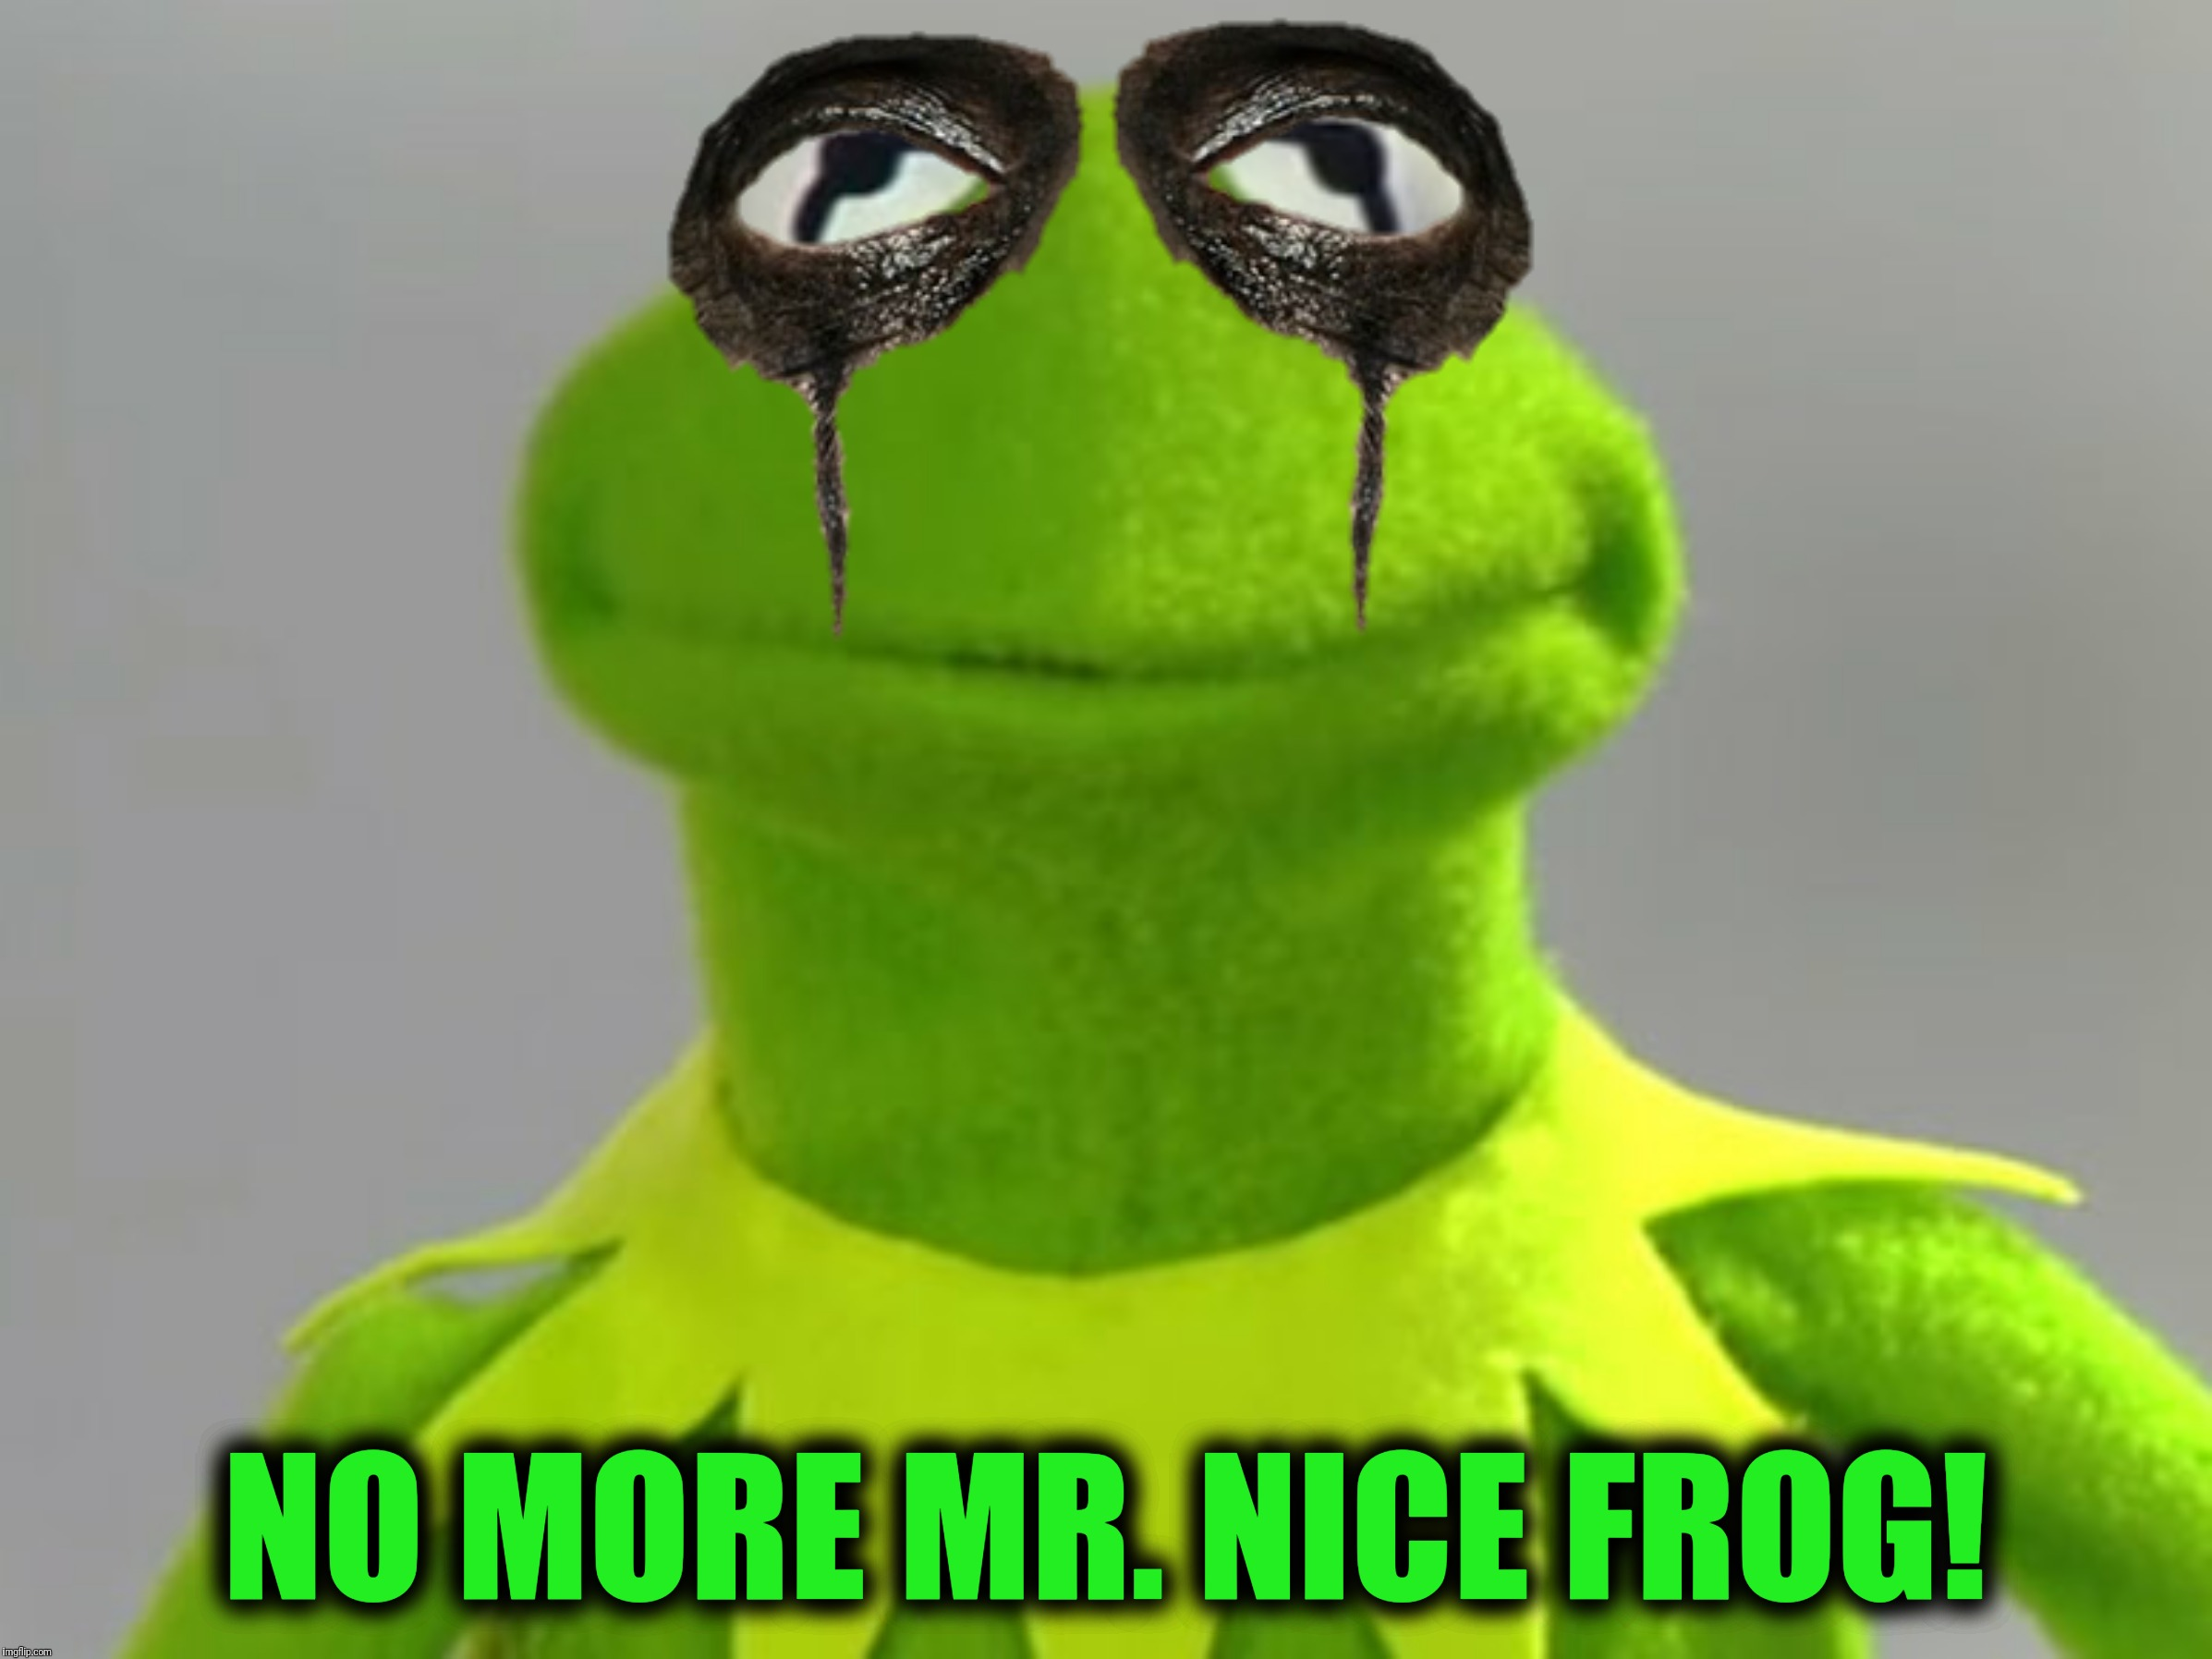 My frog bit me on the leg today...Bad Photoshop Sunday meets Frog Week June 4-10, a JBmemegeek  & giveuahint event  |  NO MORE MR. NICE FROG! | image tagged in bad photoshop sunday,frog week,alice cooper,kermit the frog | made w/ Imgflip meme maker